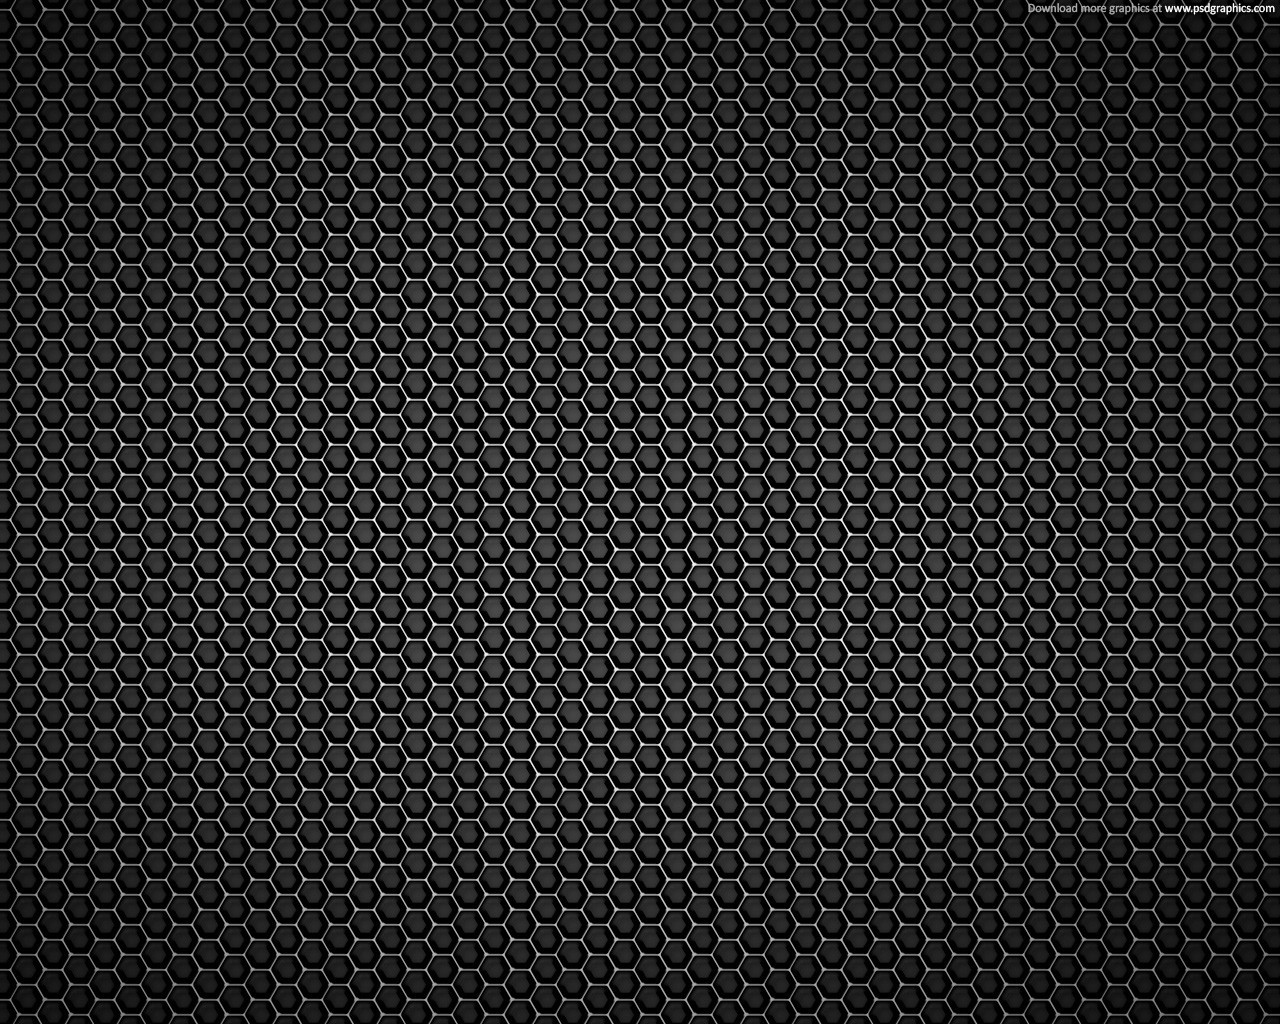 Stainless Steel Metal Texture HD Desktop Wallpapers HQ Backgrounds 1280x1024